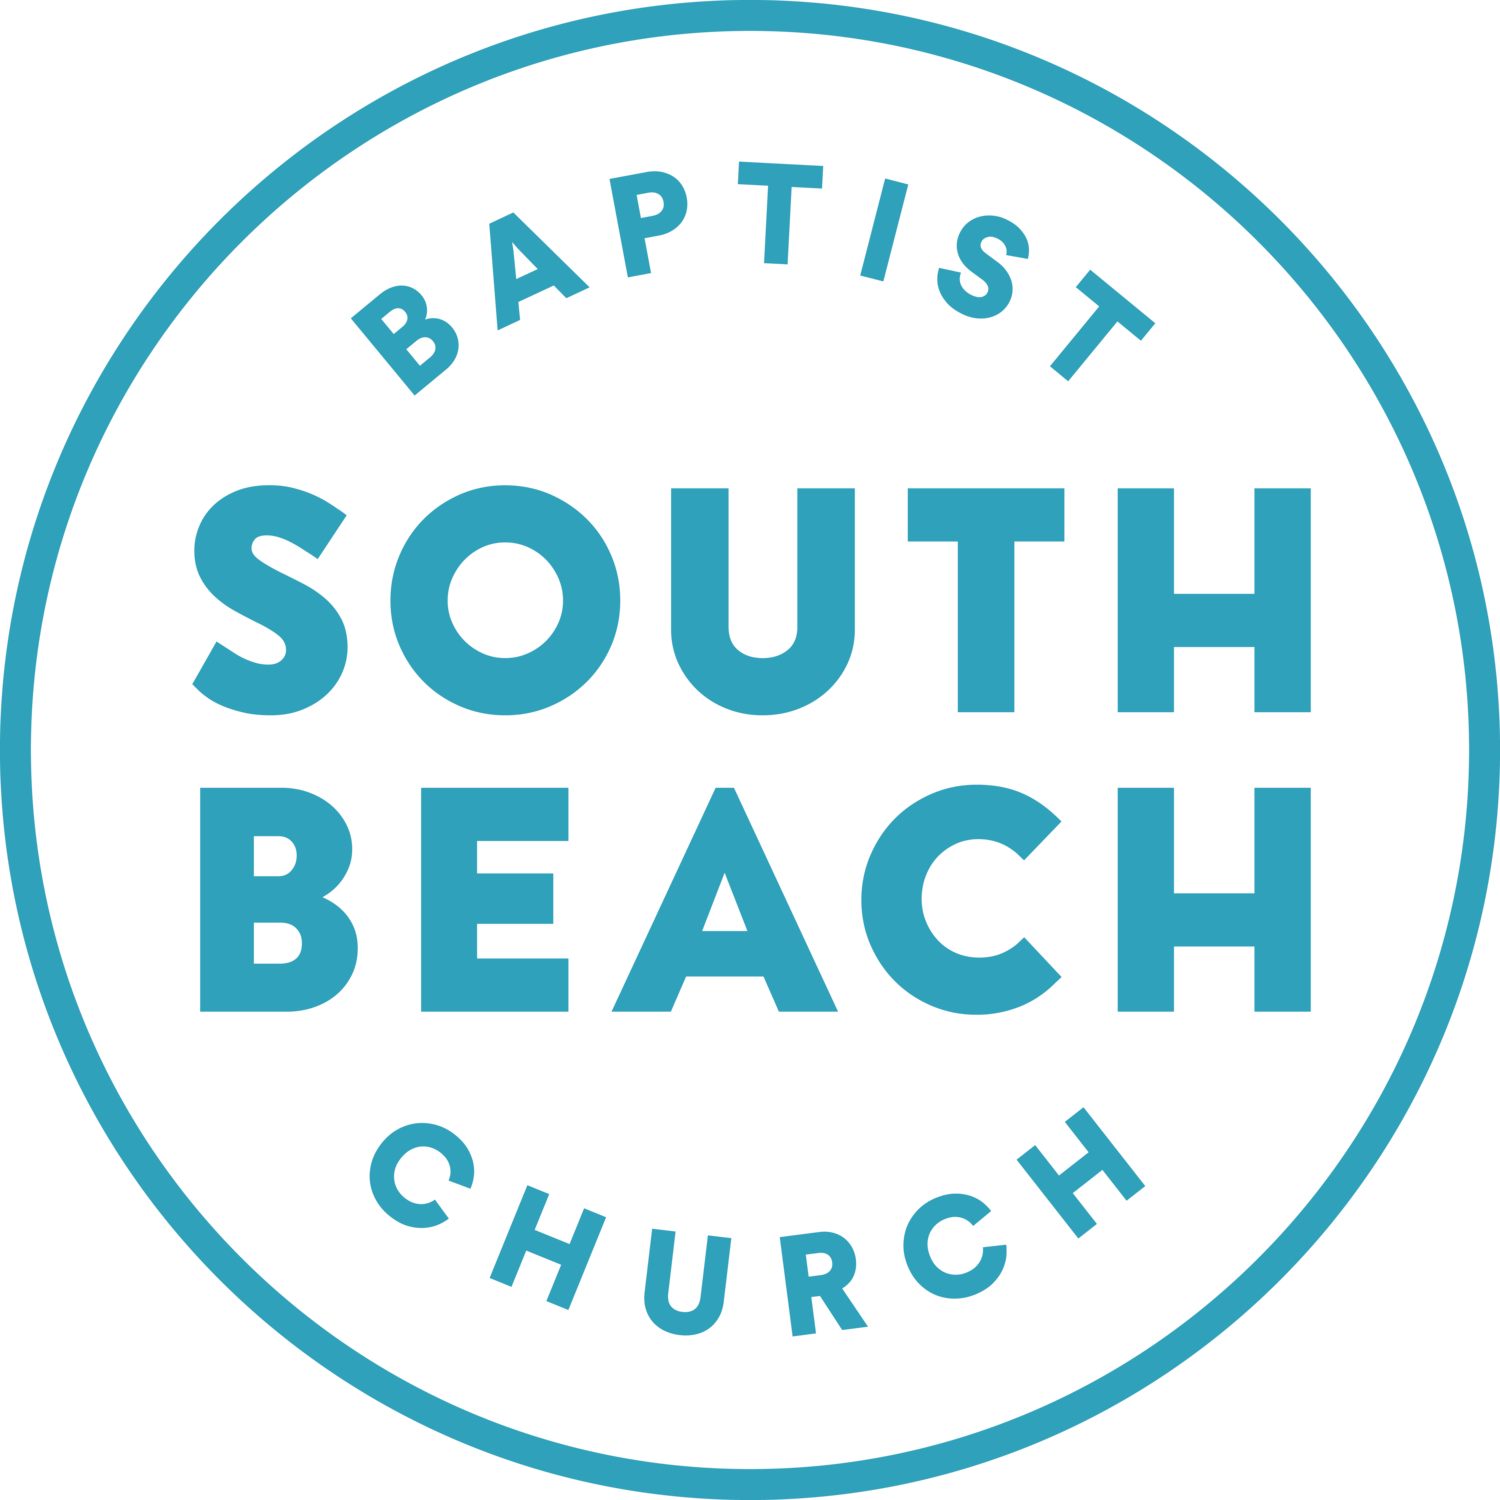 South Beach Baptist Church